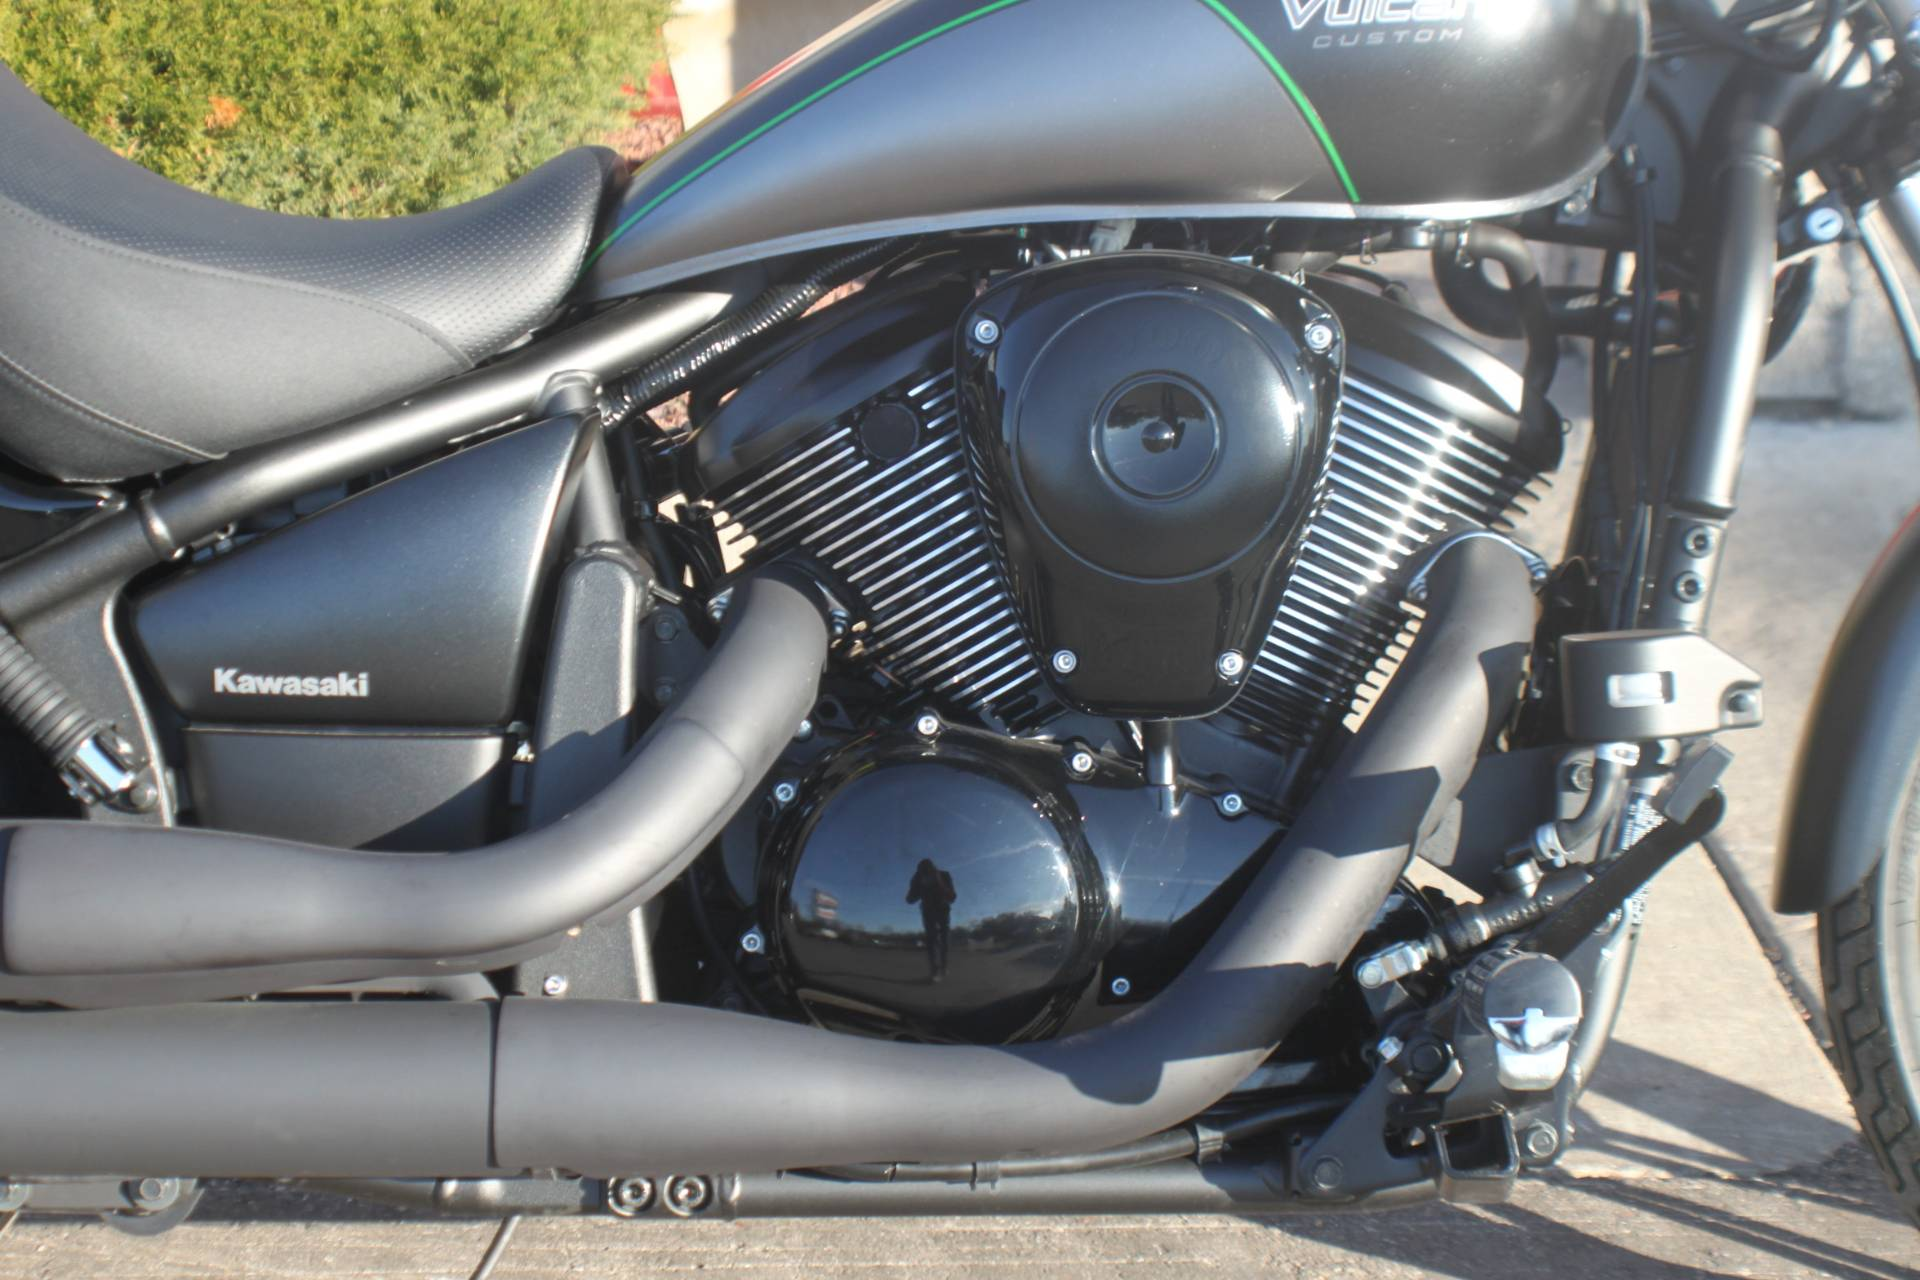 2017 Kawasaki Vulcan 900 Custom in Janesville, Wisconsin - Photo 12